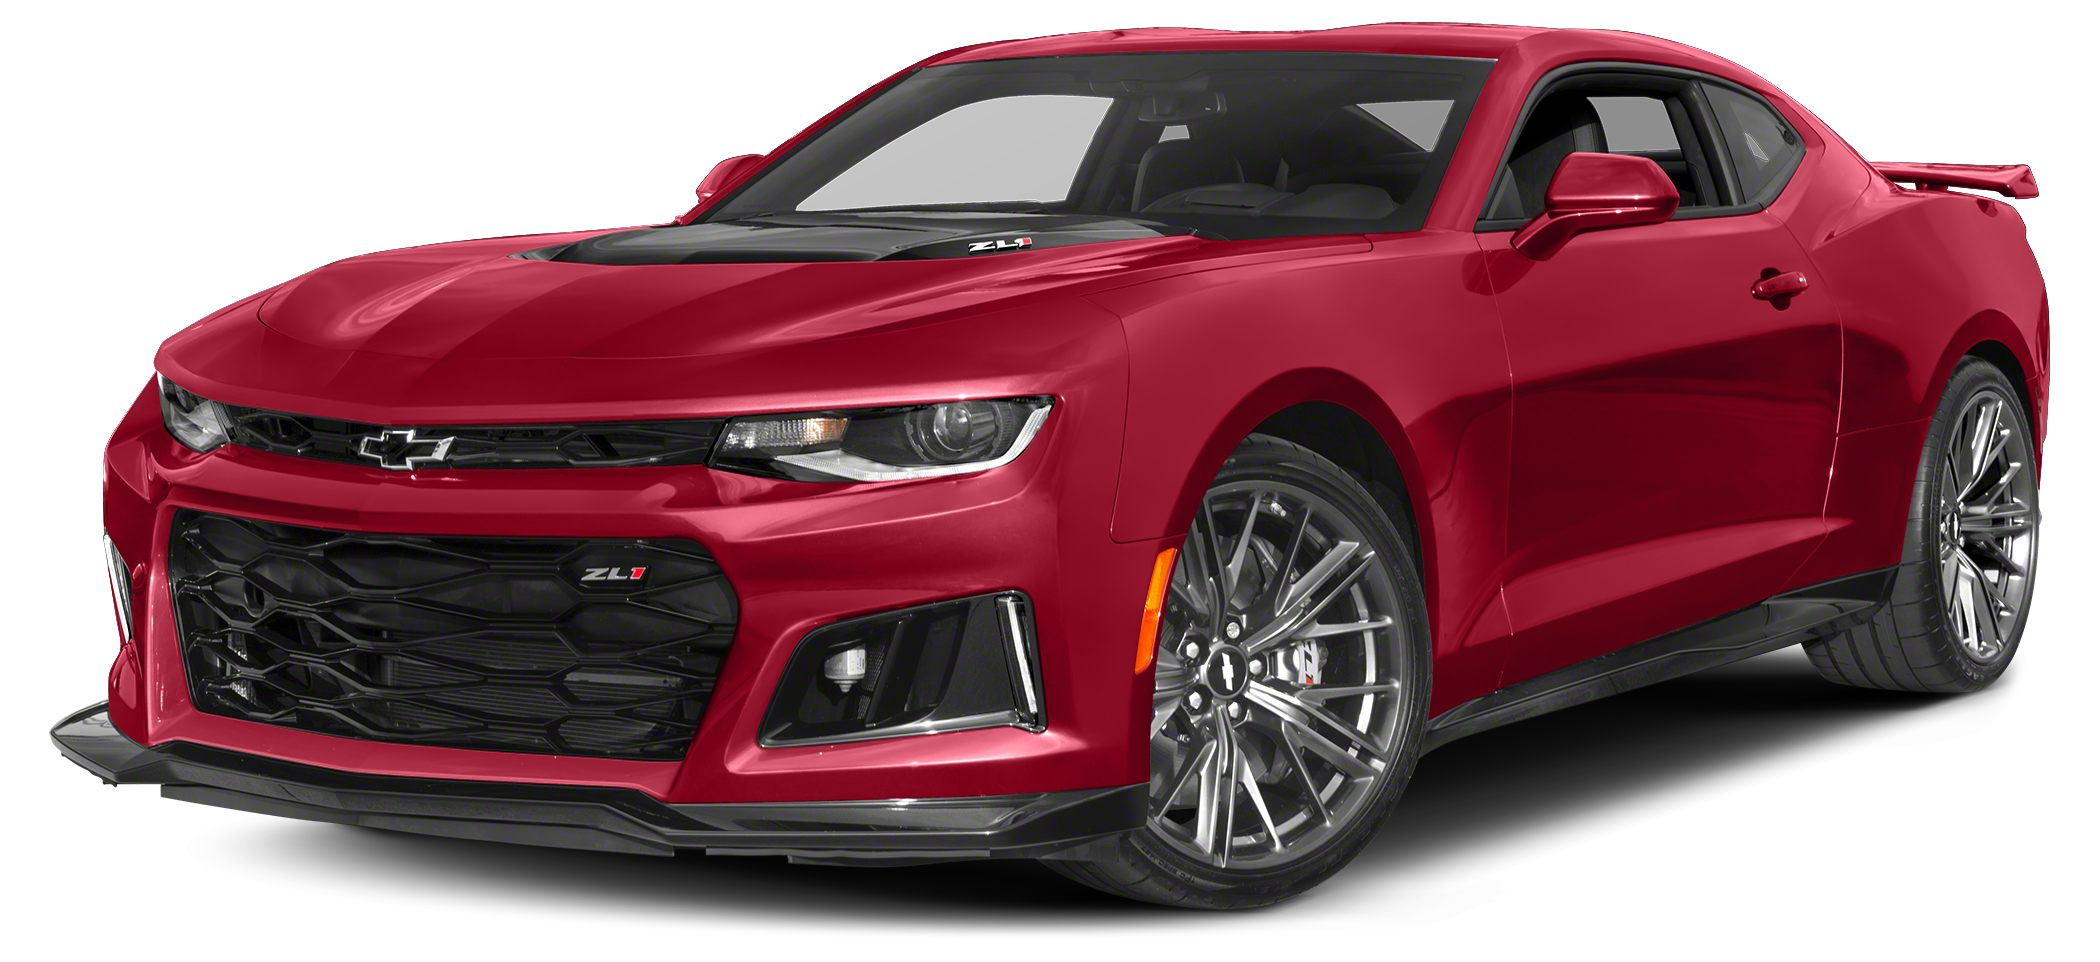 2018 Chevrolet Camaro ZL1 HeatedCooled Leather Seats ZL1 1LE EXTREME TRACK PERFORMANCE PAC AU